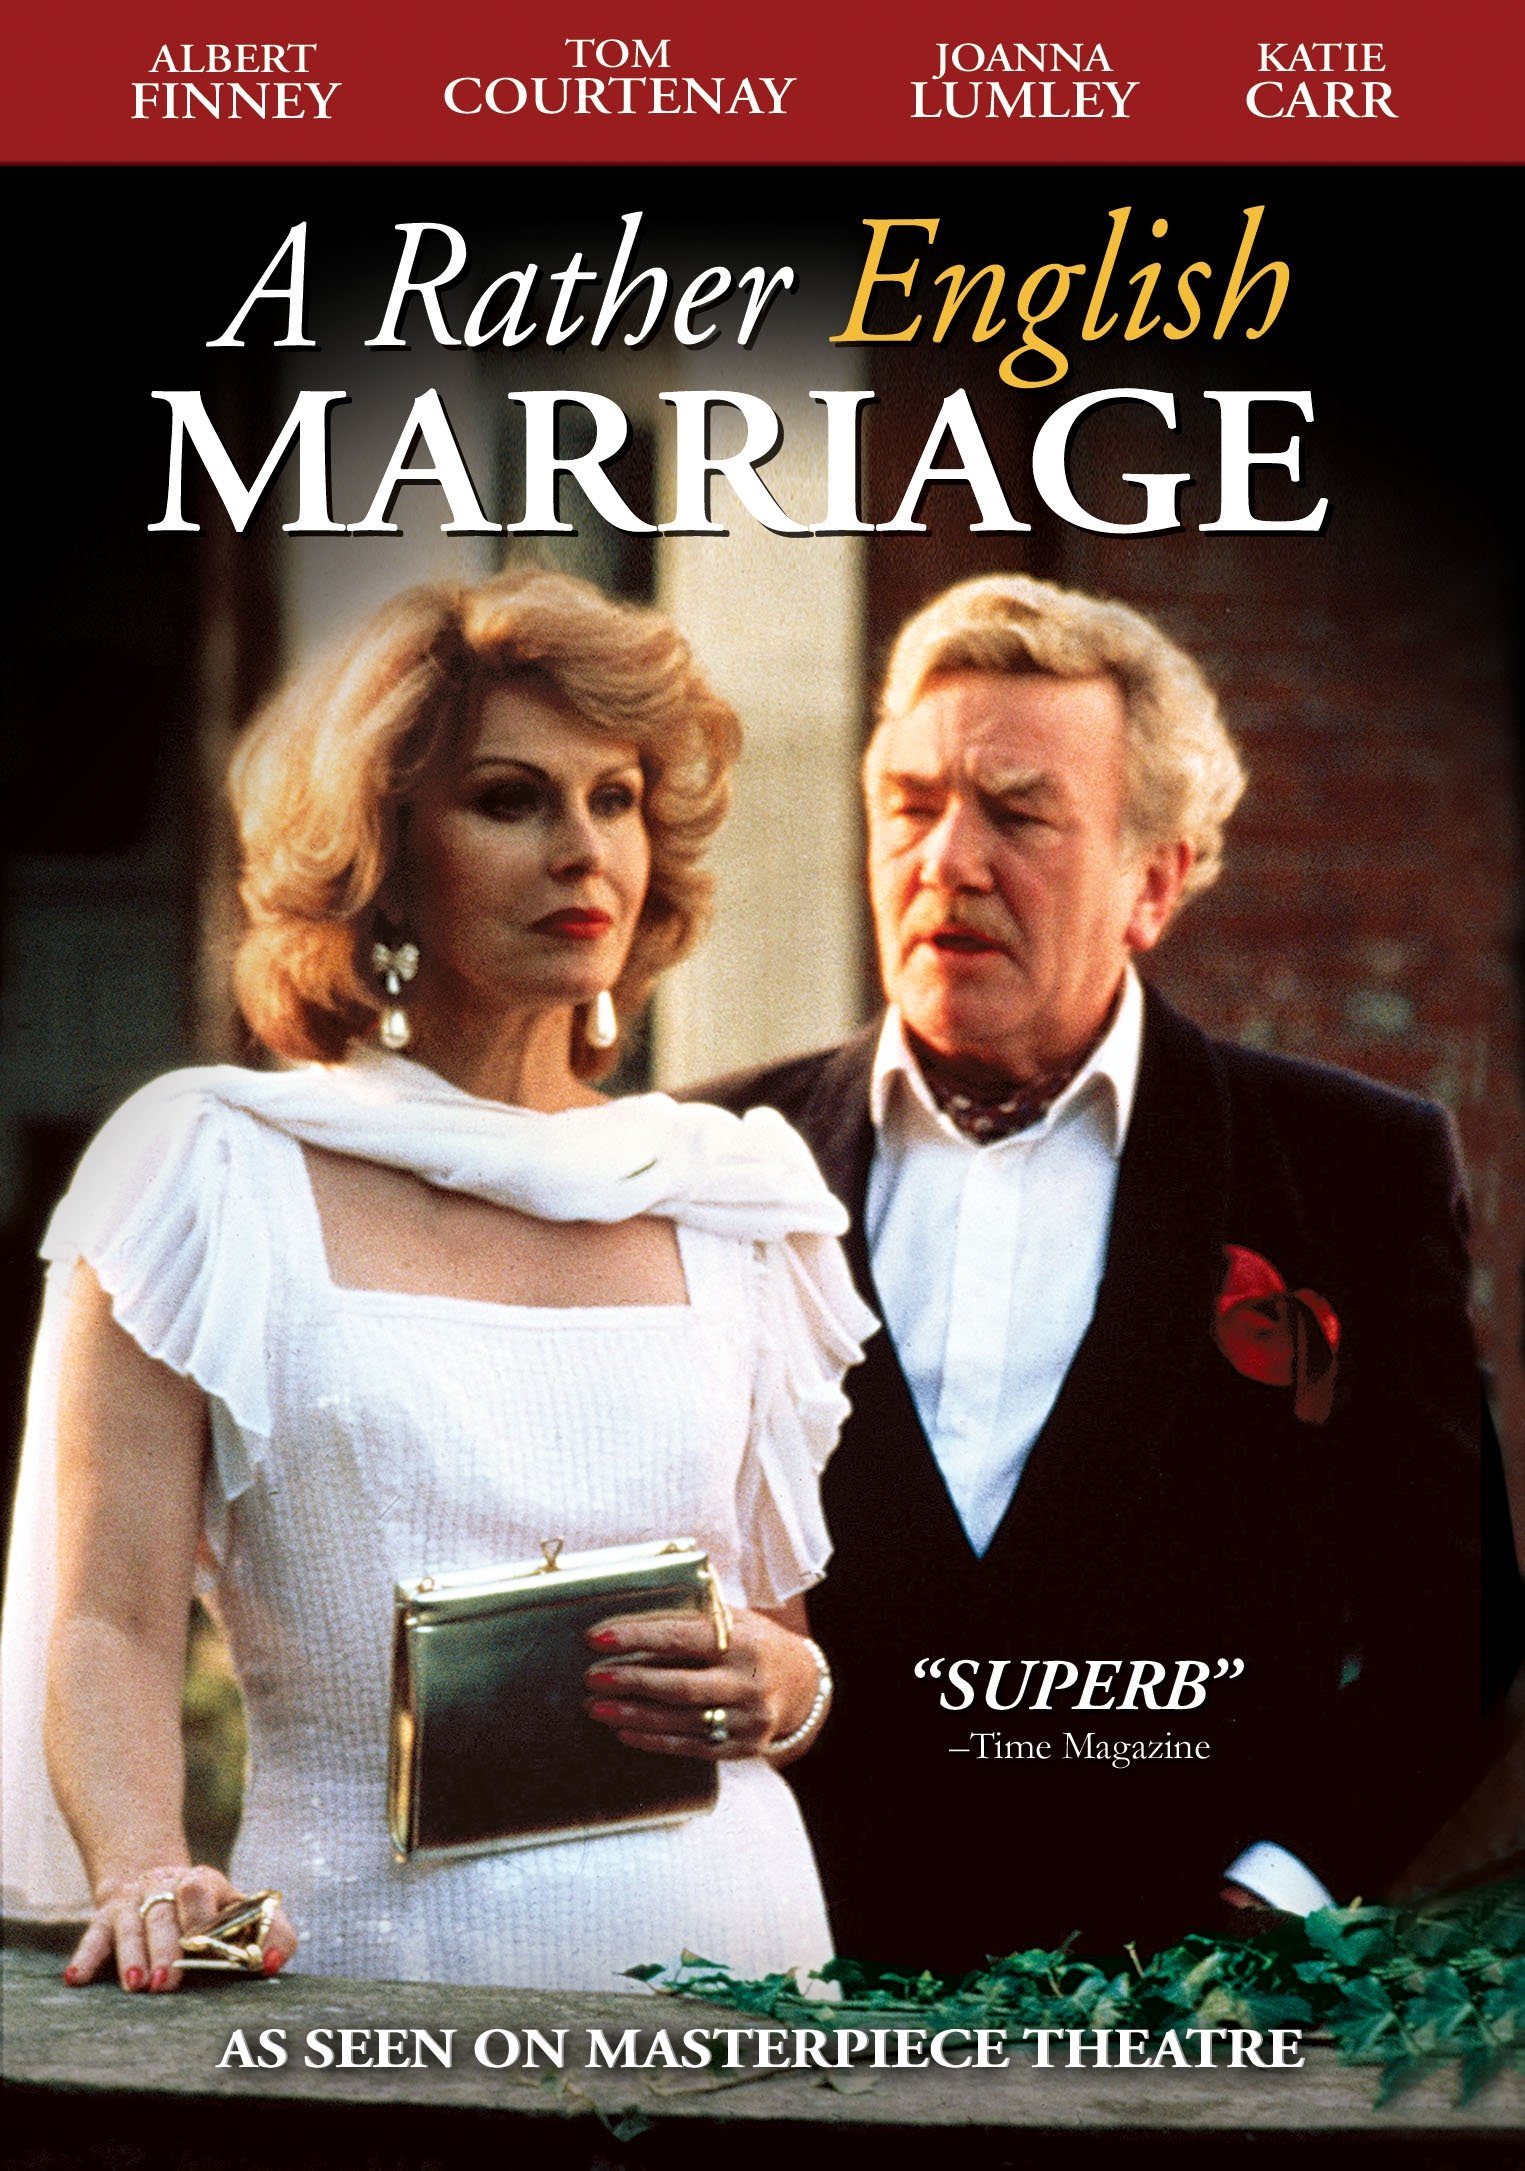 A Rather English Marriage by E1 ENTERTAINMENT